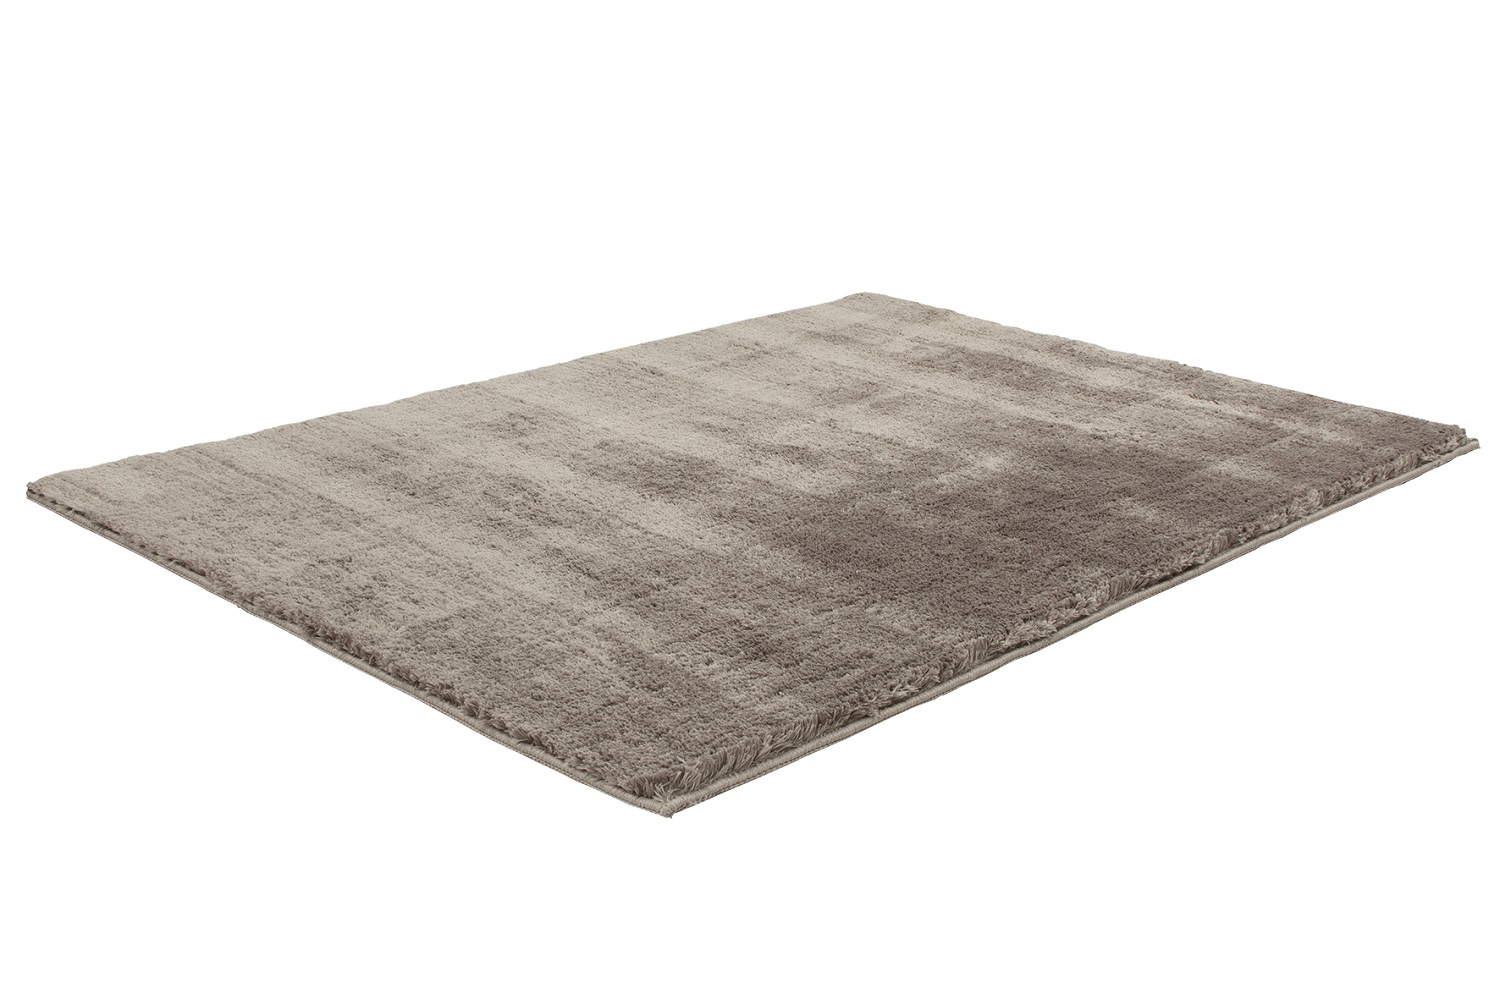 Kuhfell Teppich Taupe Teppich Obsession Curacao 490 Taupe Raum Quadrat